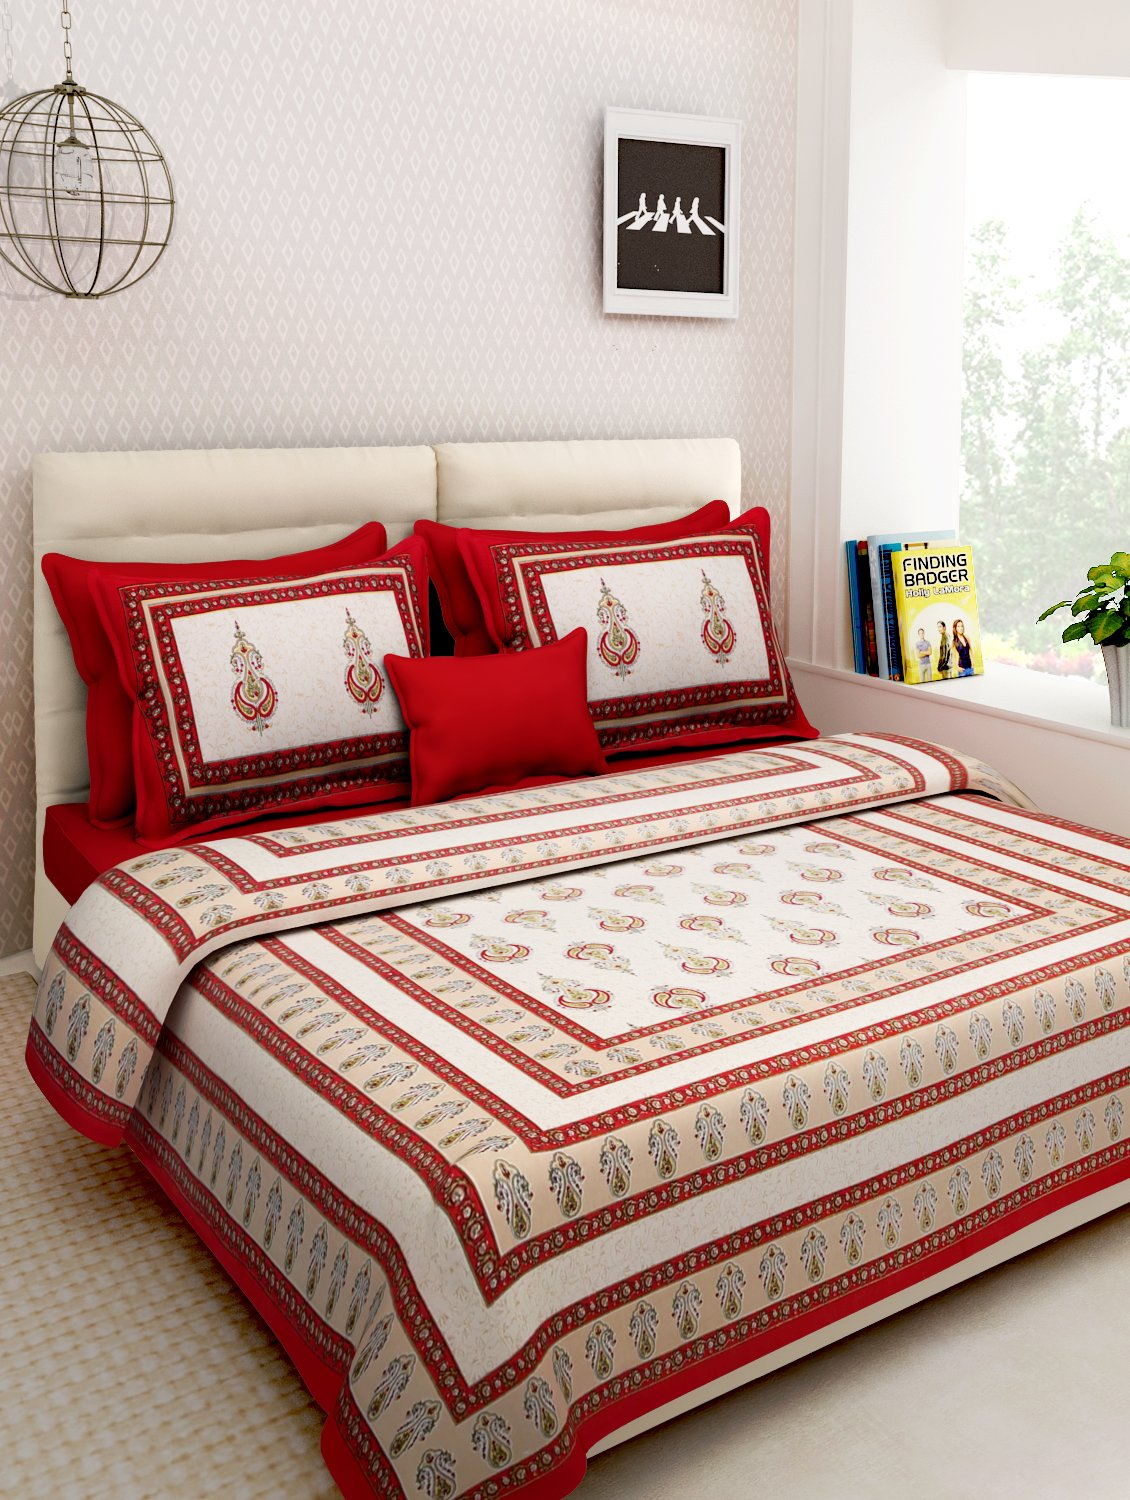 Rajasthan decor screen block print rajasthani king size bed sheet with 2 pillow cover amazon in home kitchen